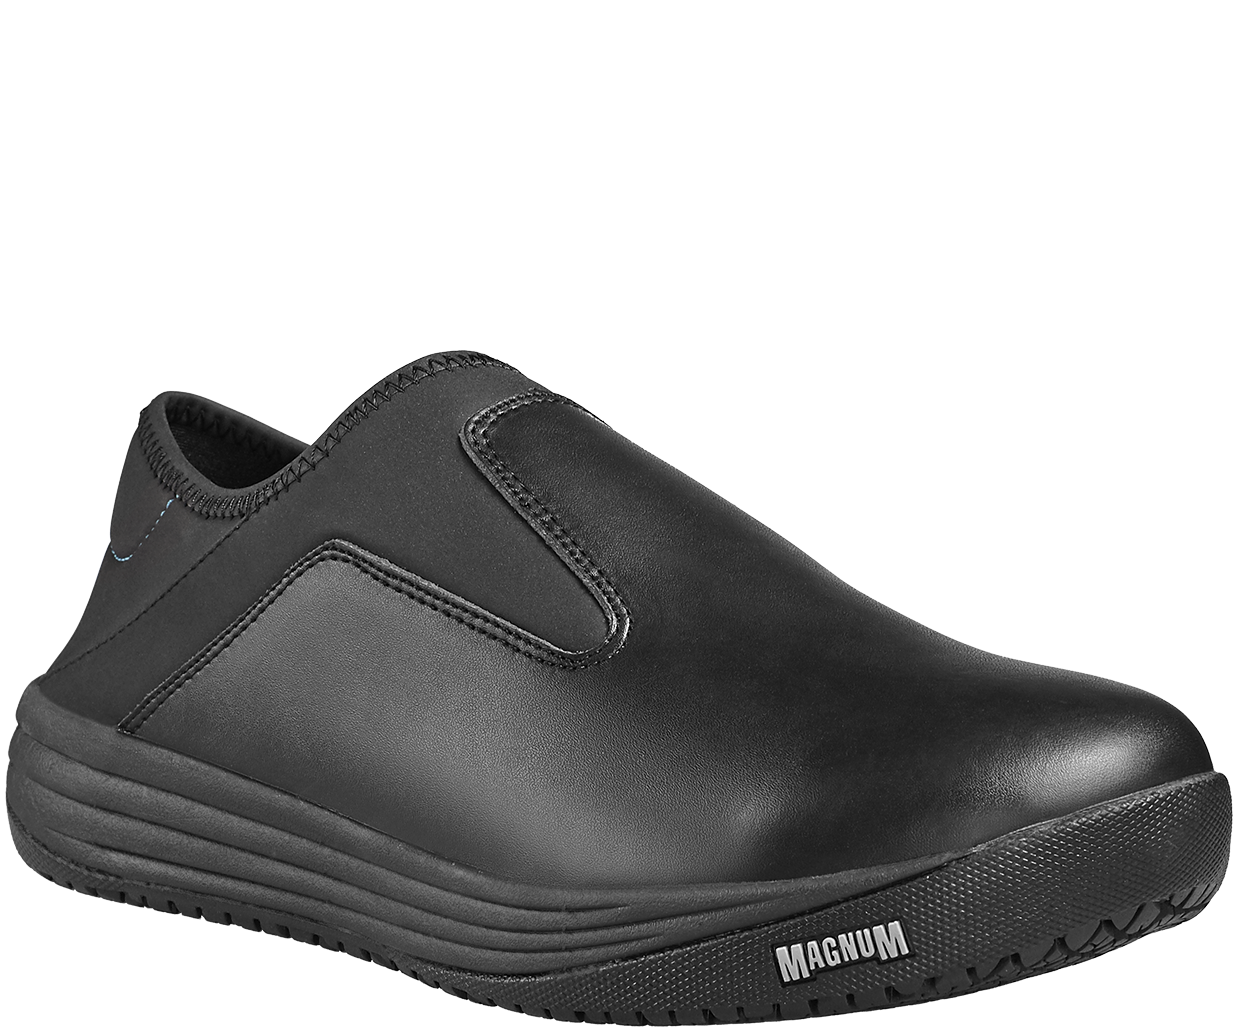 5d8d3ef4146 Magnum Fairfax mens healthcare & catering non-safety shoe